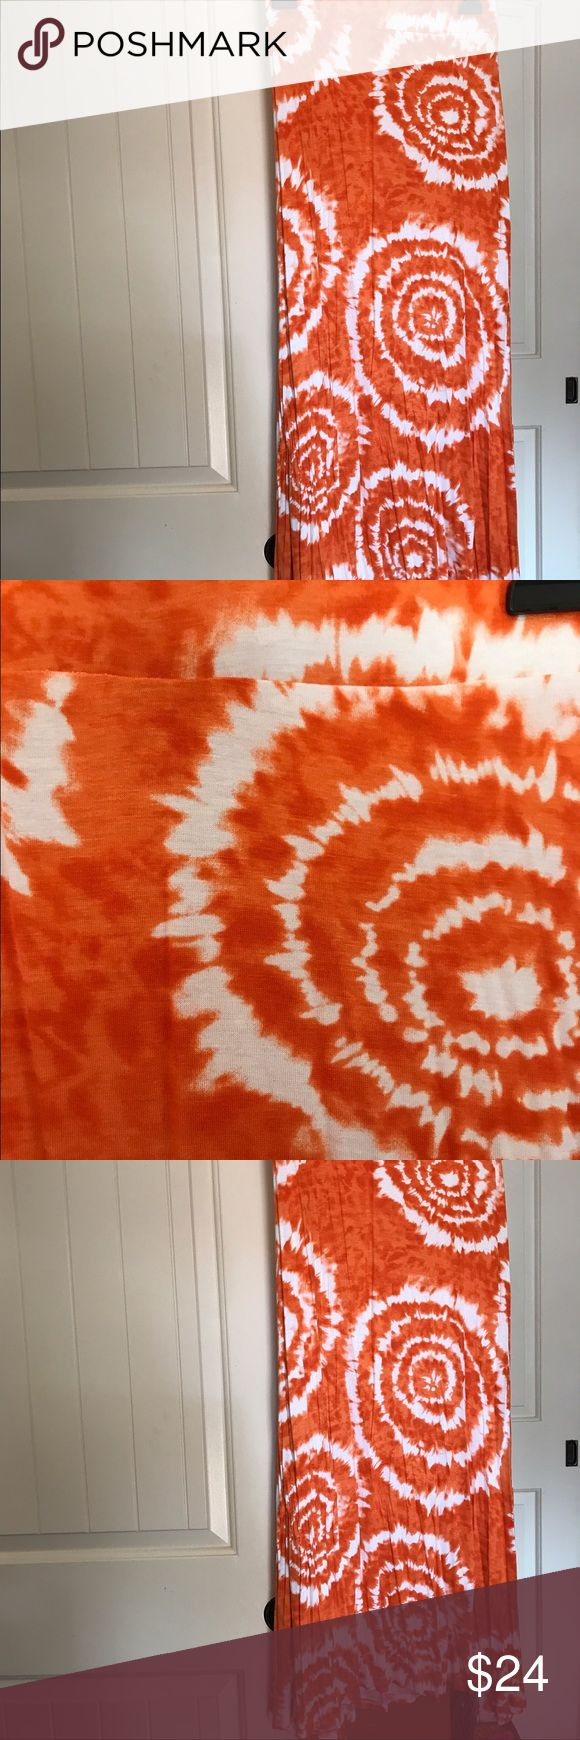 🎉🌈Sale!!!!  Tie dye orange maxi skirt NWOT!!!! Really soft never worn whispers Skirts Maxi